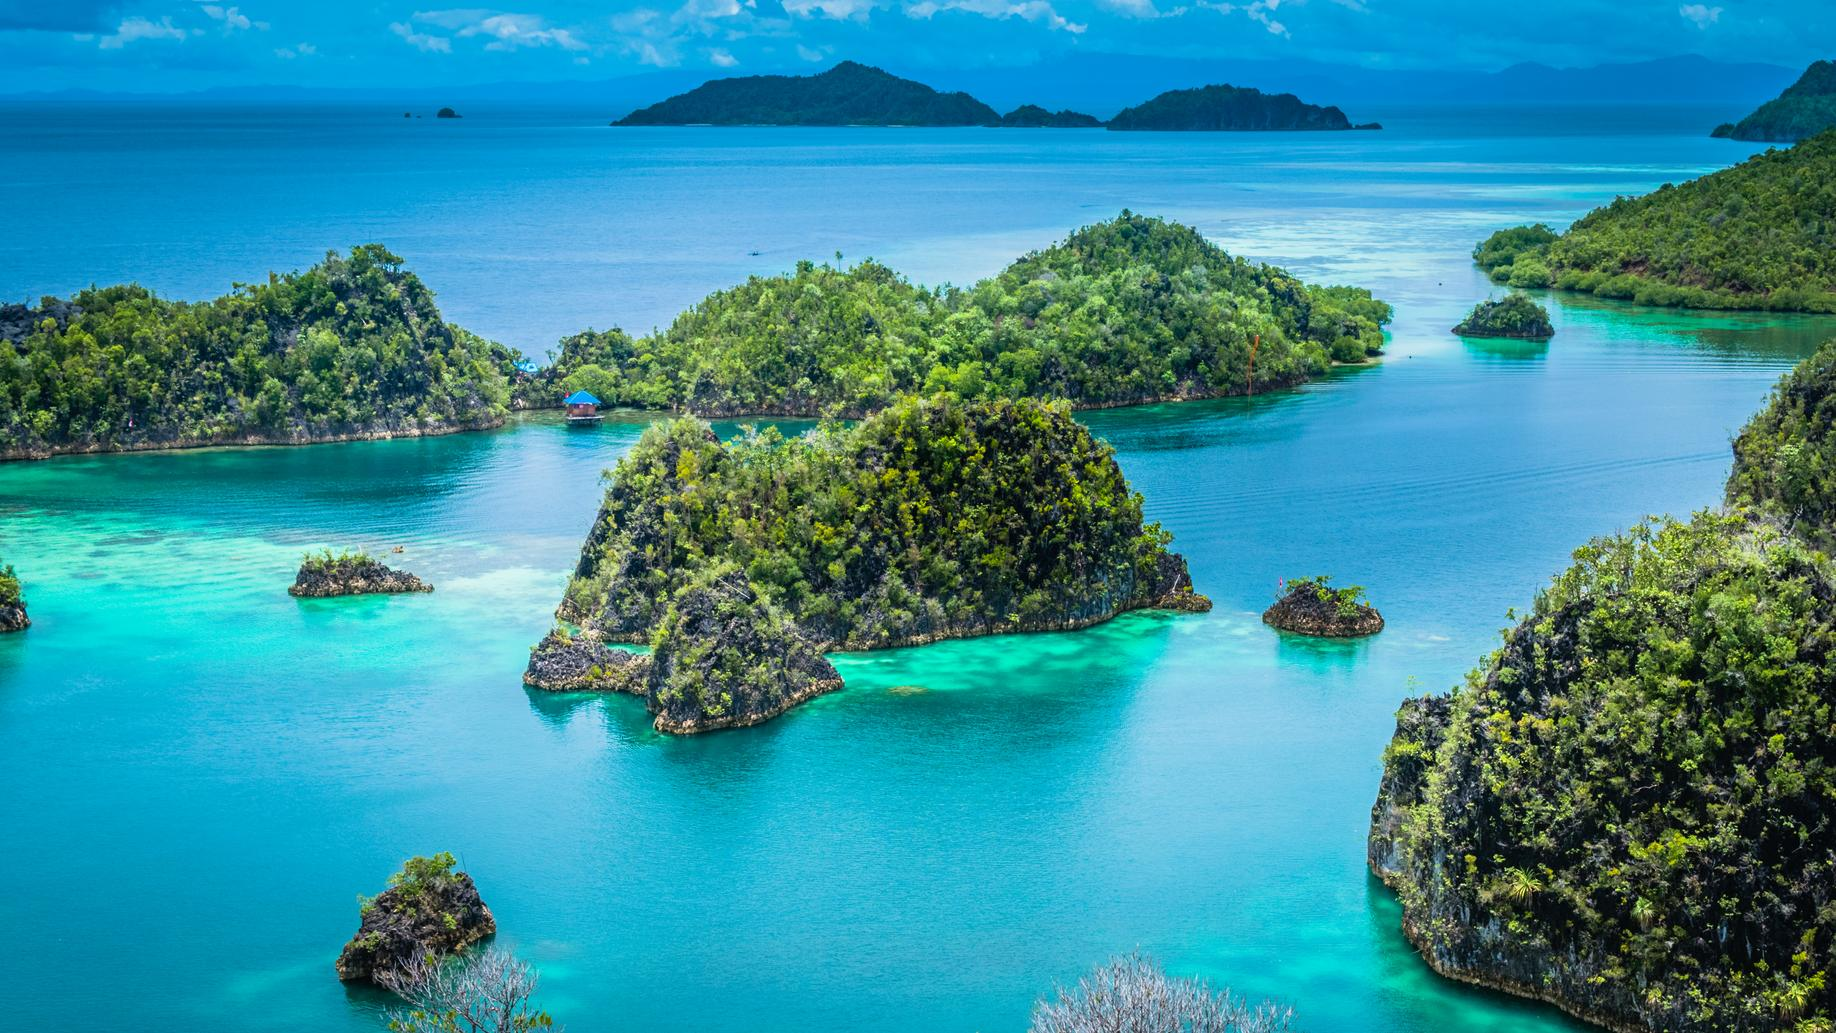 Raja Ampat, or Four Kings, is an island archipelago in New Guinea, Indonesia.